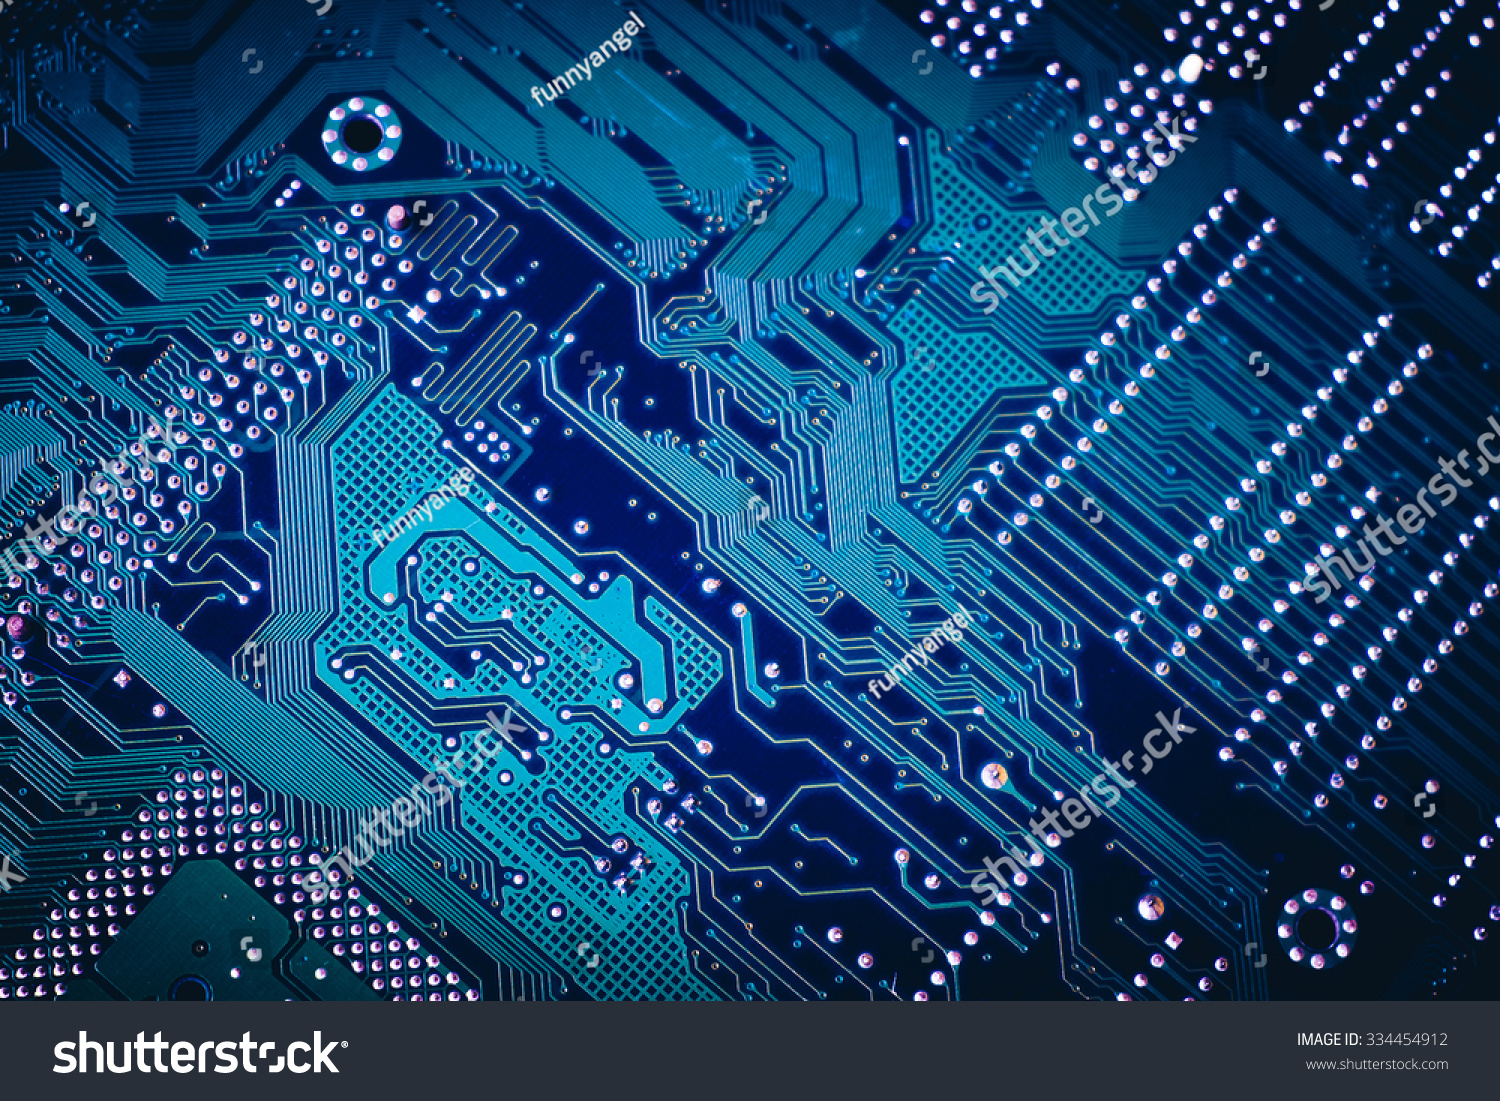 Simple Integrated Circuit Manual Guide Wiring Diagram Board Electronic Computer Hardware Technology Motherboard Digital Chip Tech Science Design Chips